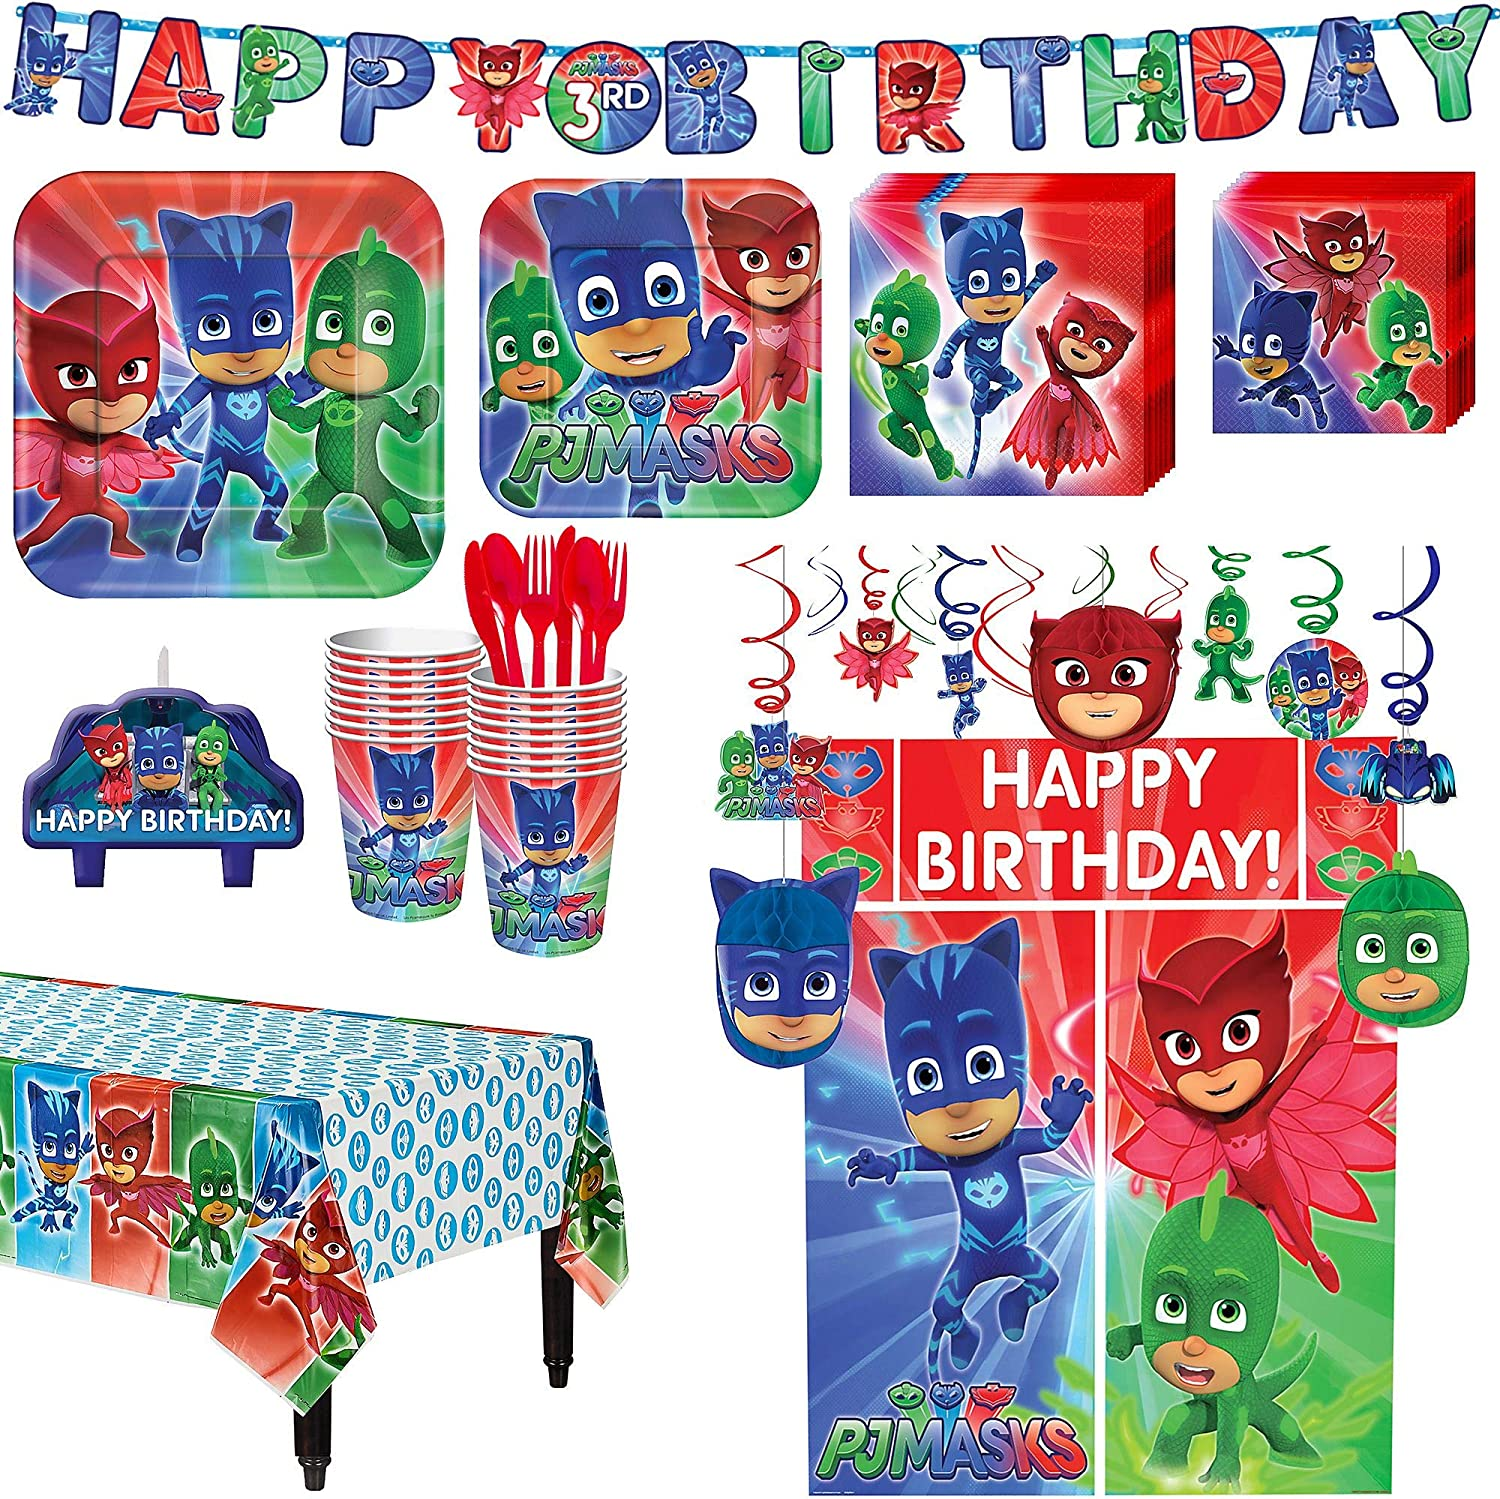 PJ Masks Birthday Party Kit, Includes Happy Birthday Banner and Decorations, Serves 16, by Party City